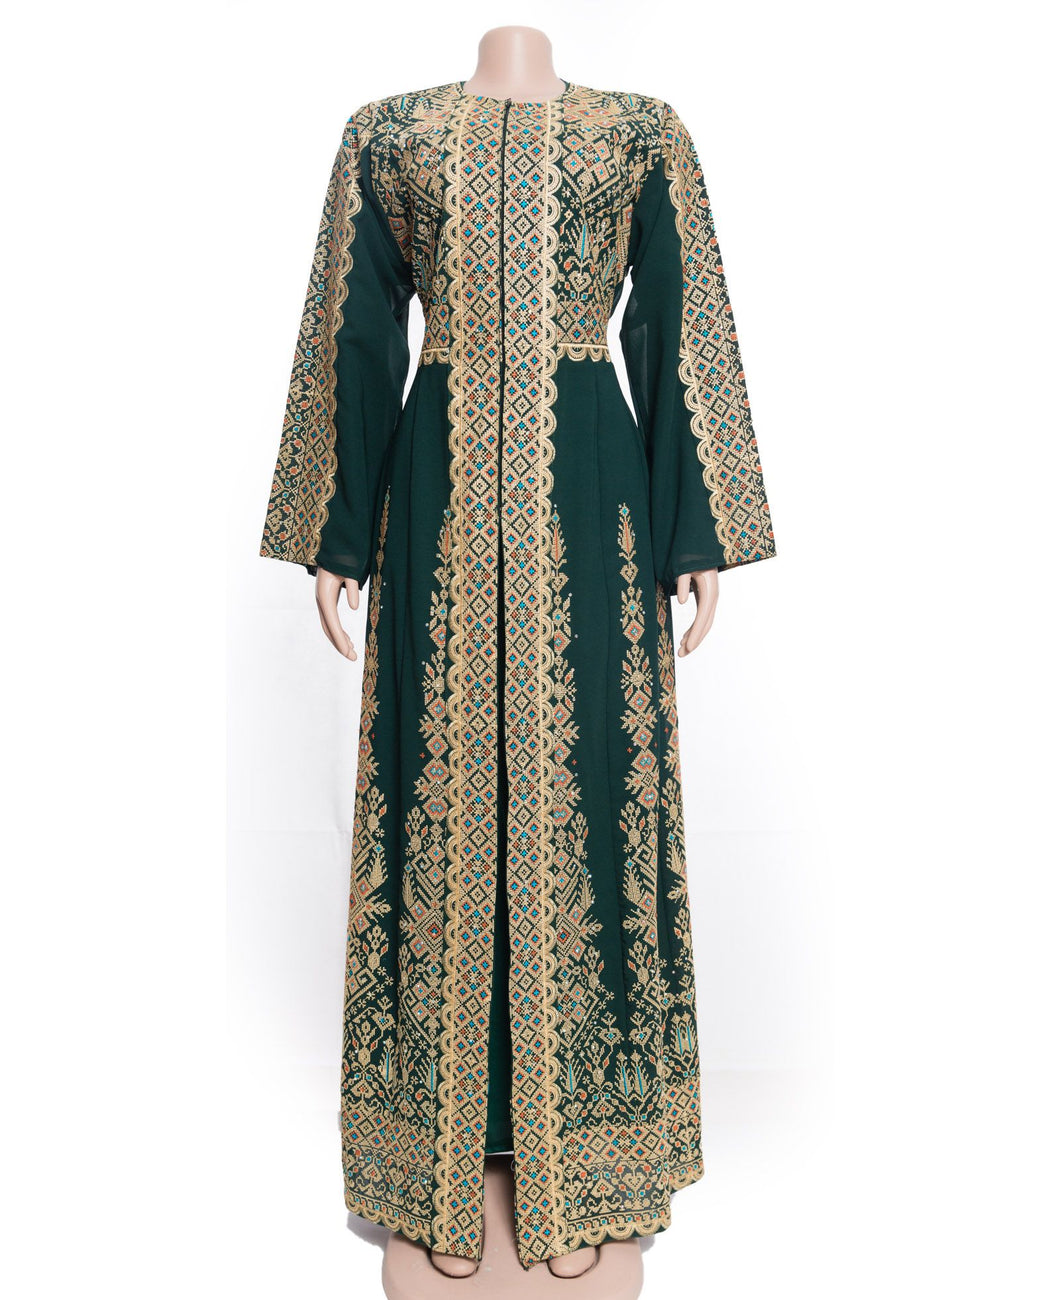 The princess dress - Two pieces embroidered green and golden dress